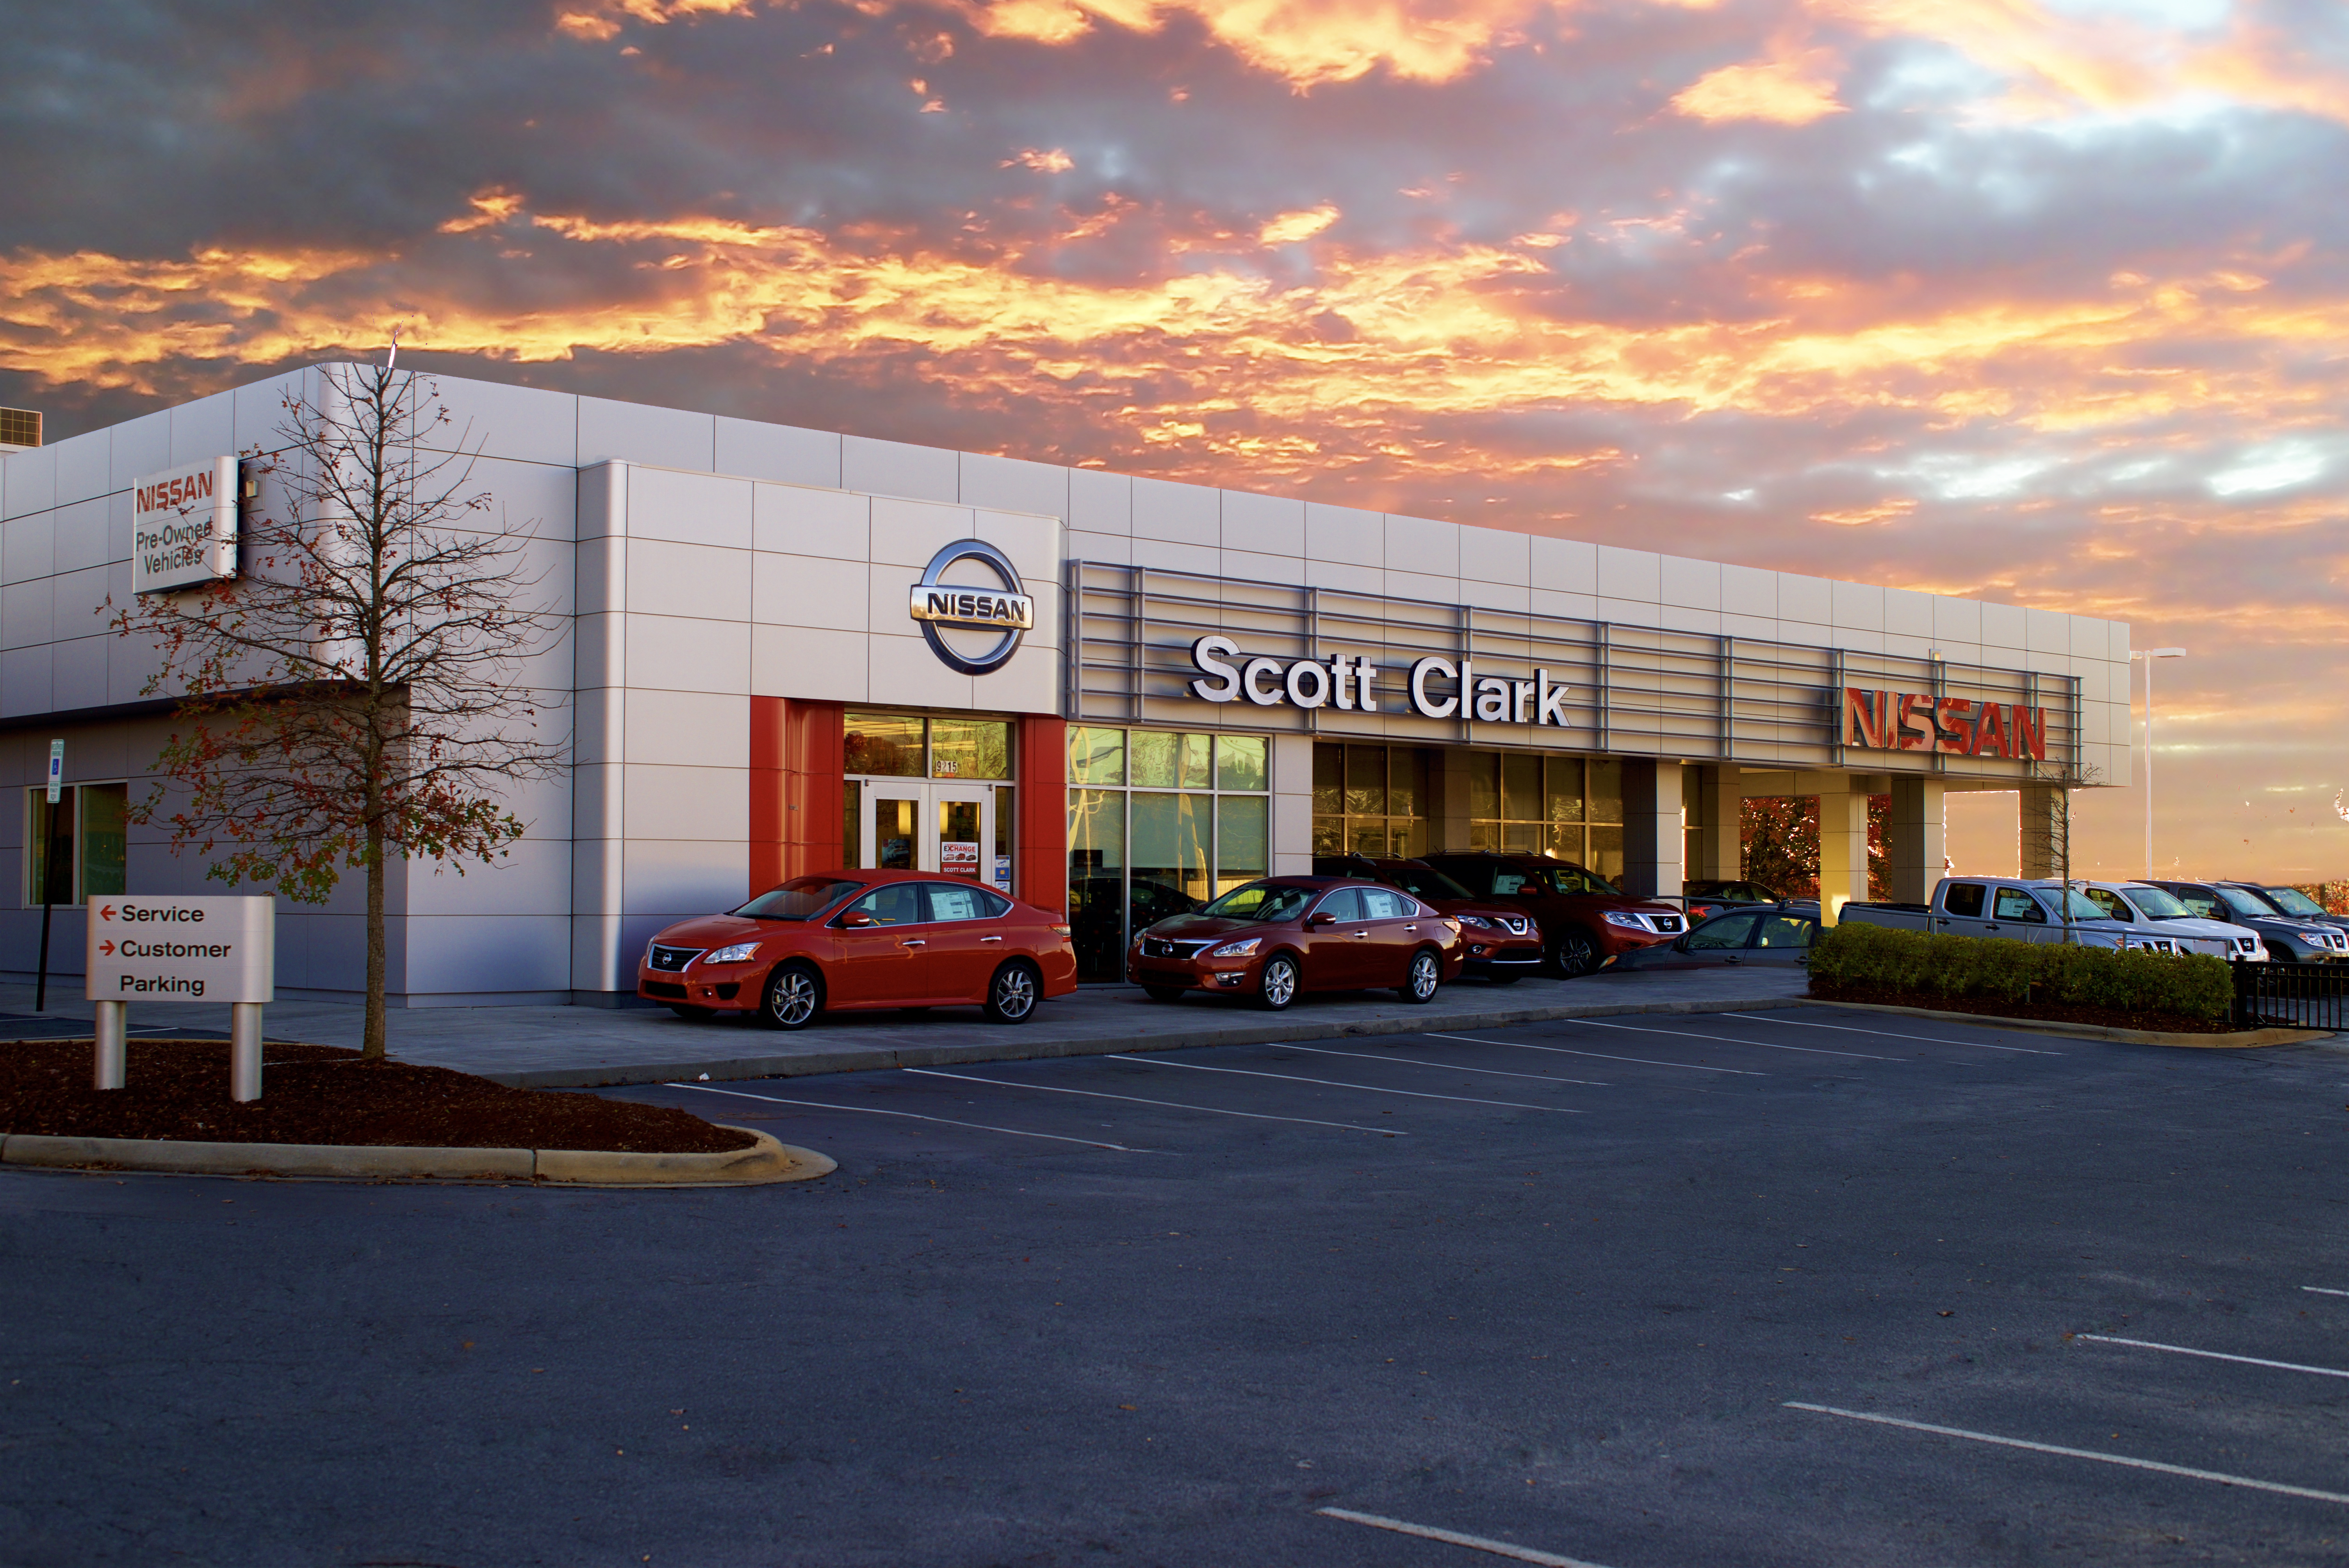 Scott Clark Nissan >> Local Charlotte Nissan Dealership Named One Of The 50 Best In The